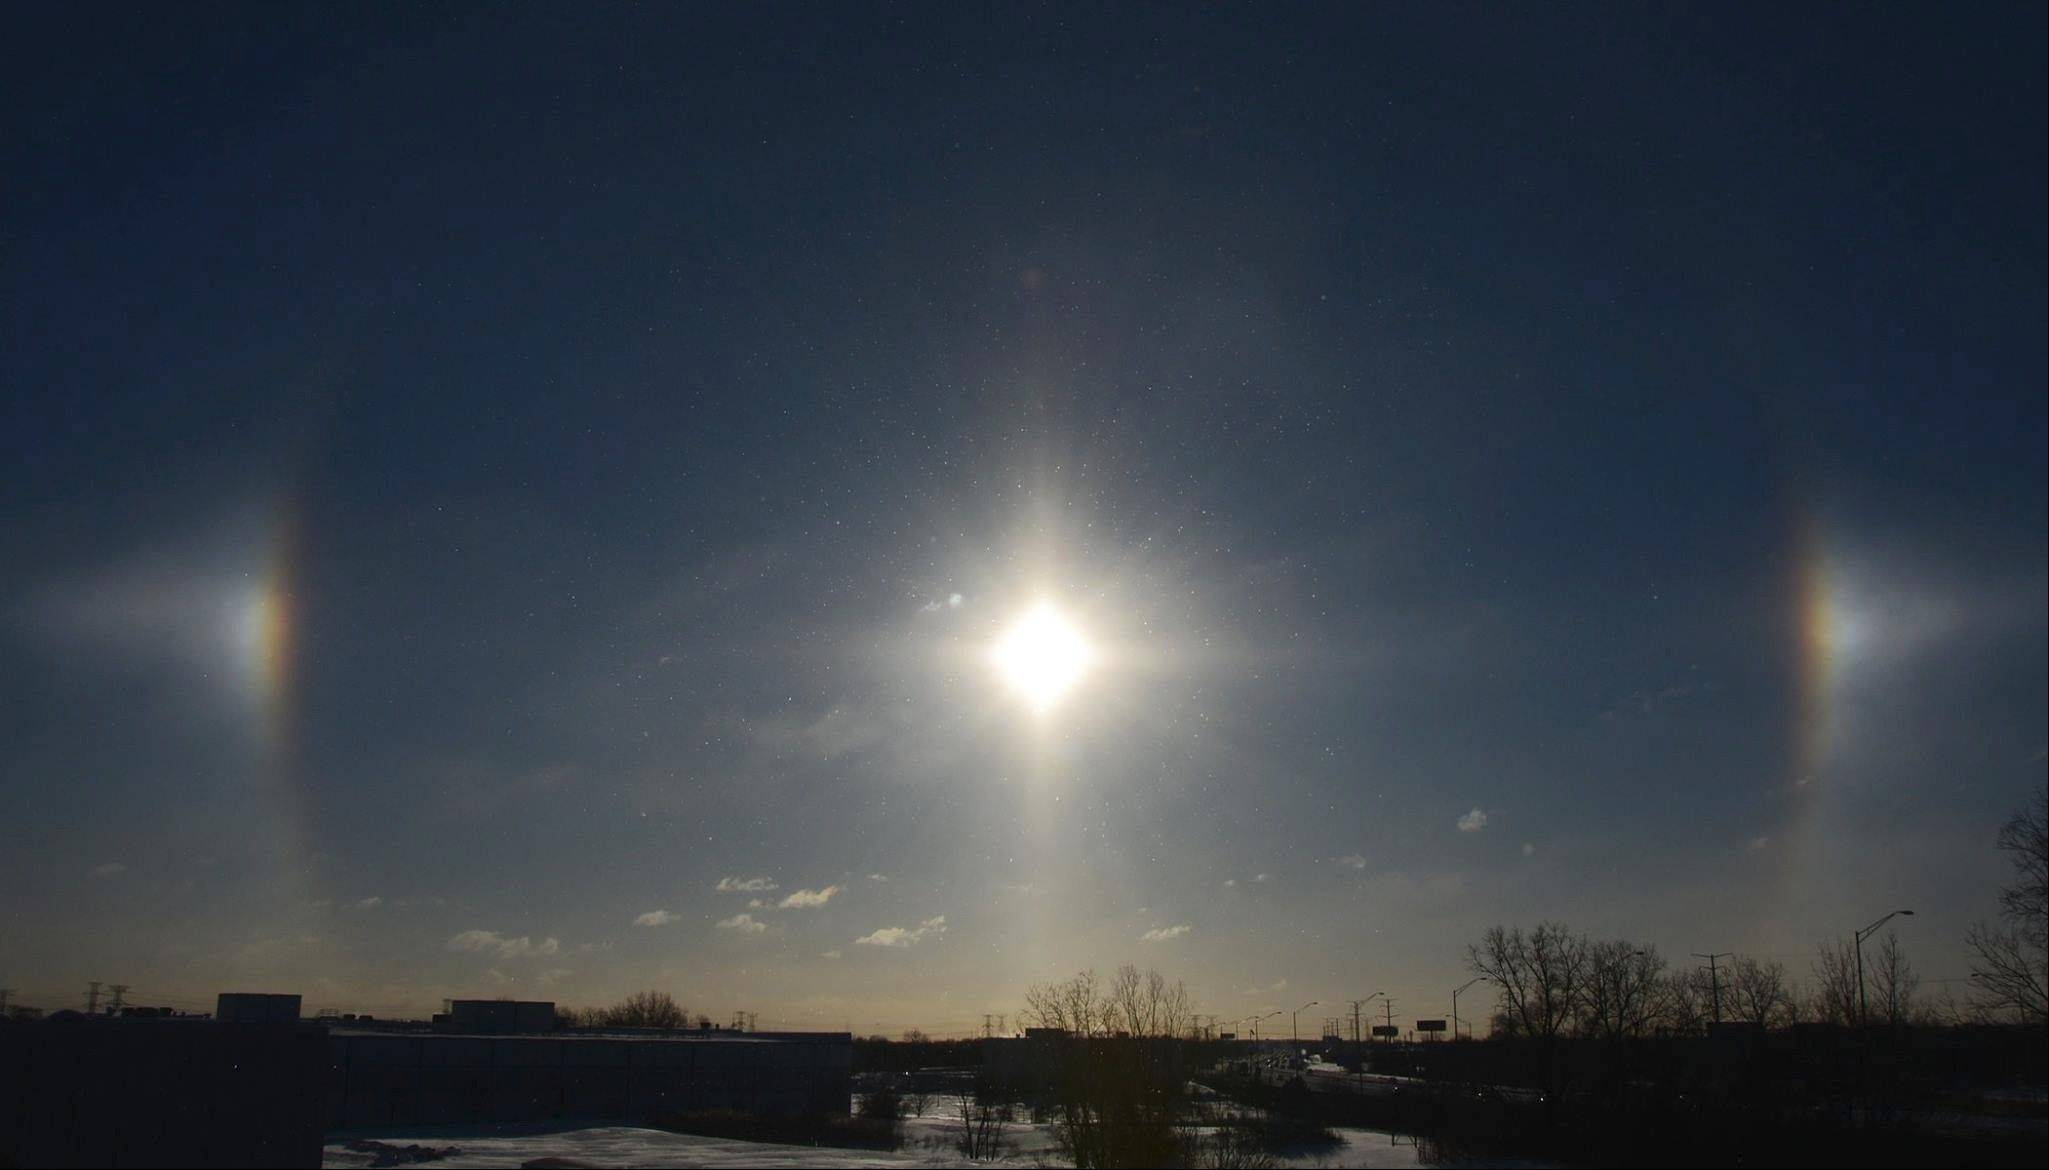 Sundog lights up frigid suburban skies